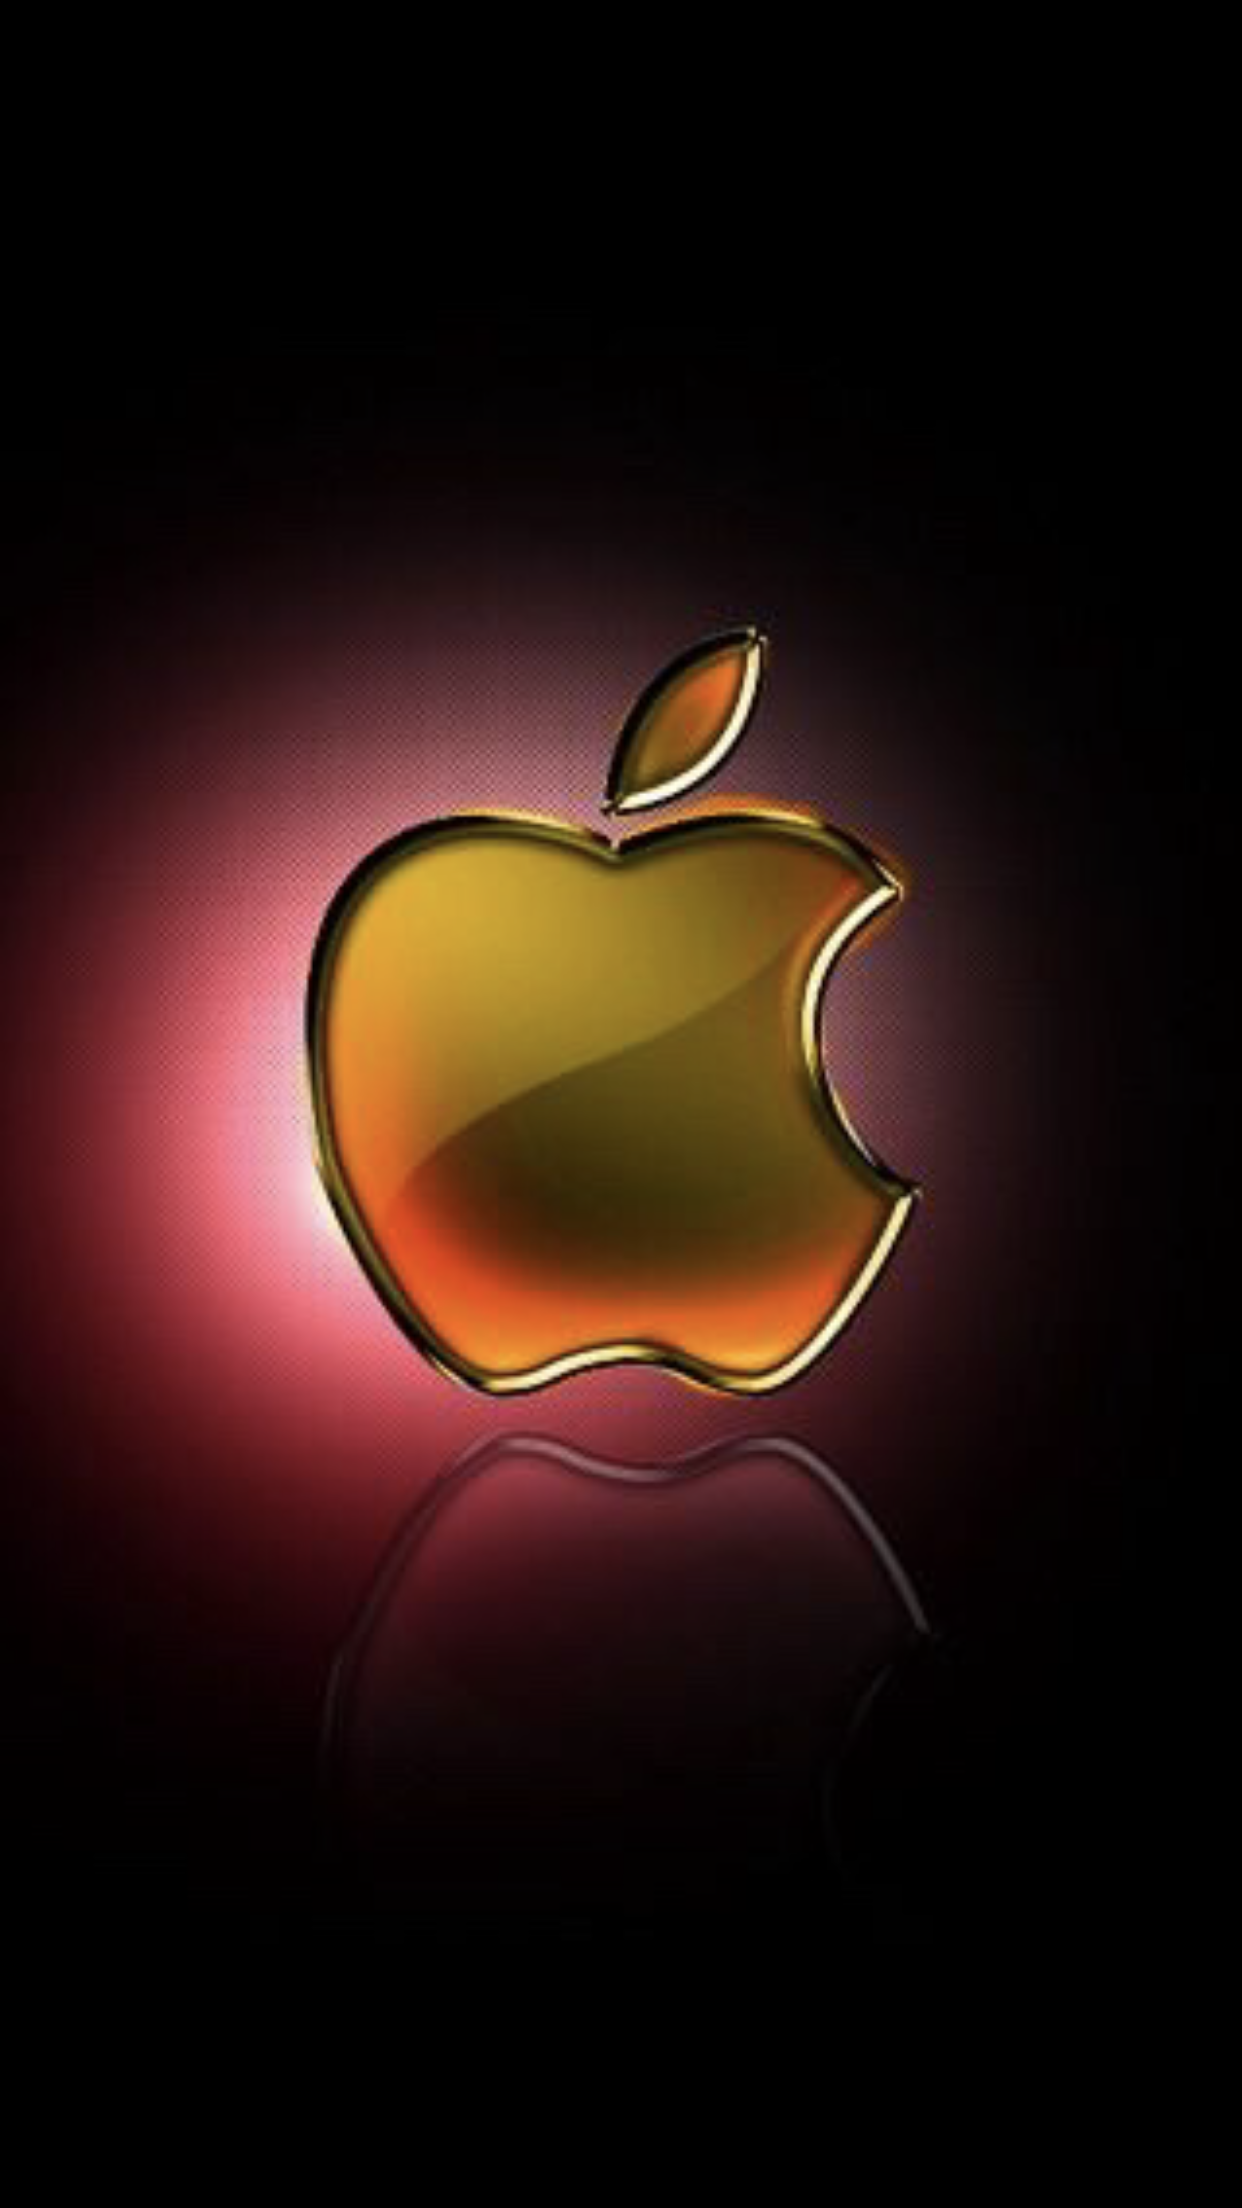 Pin By April Simmons On Wallpaper For Iphone In 2019 Apple Logo